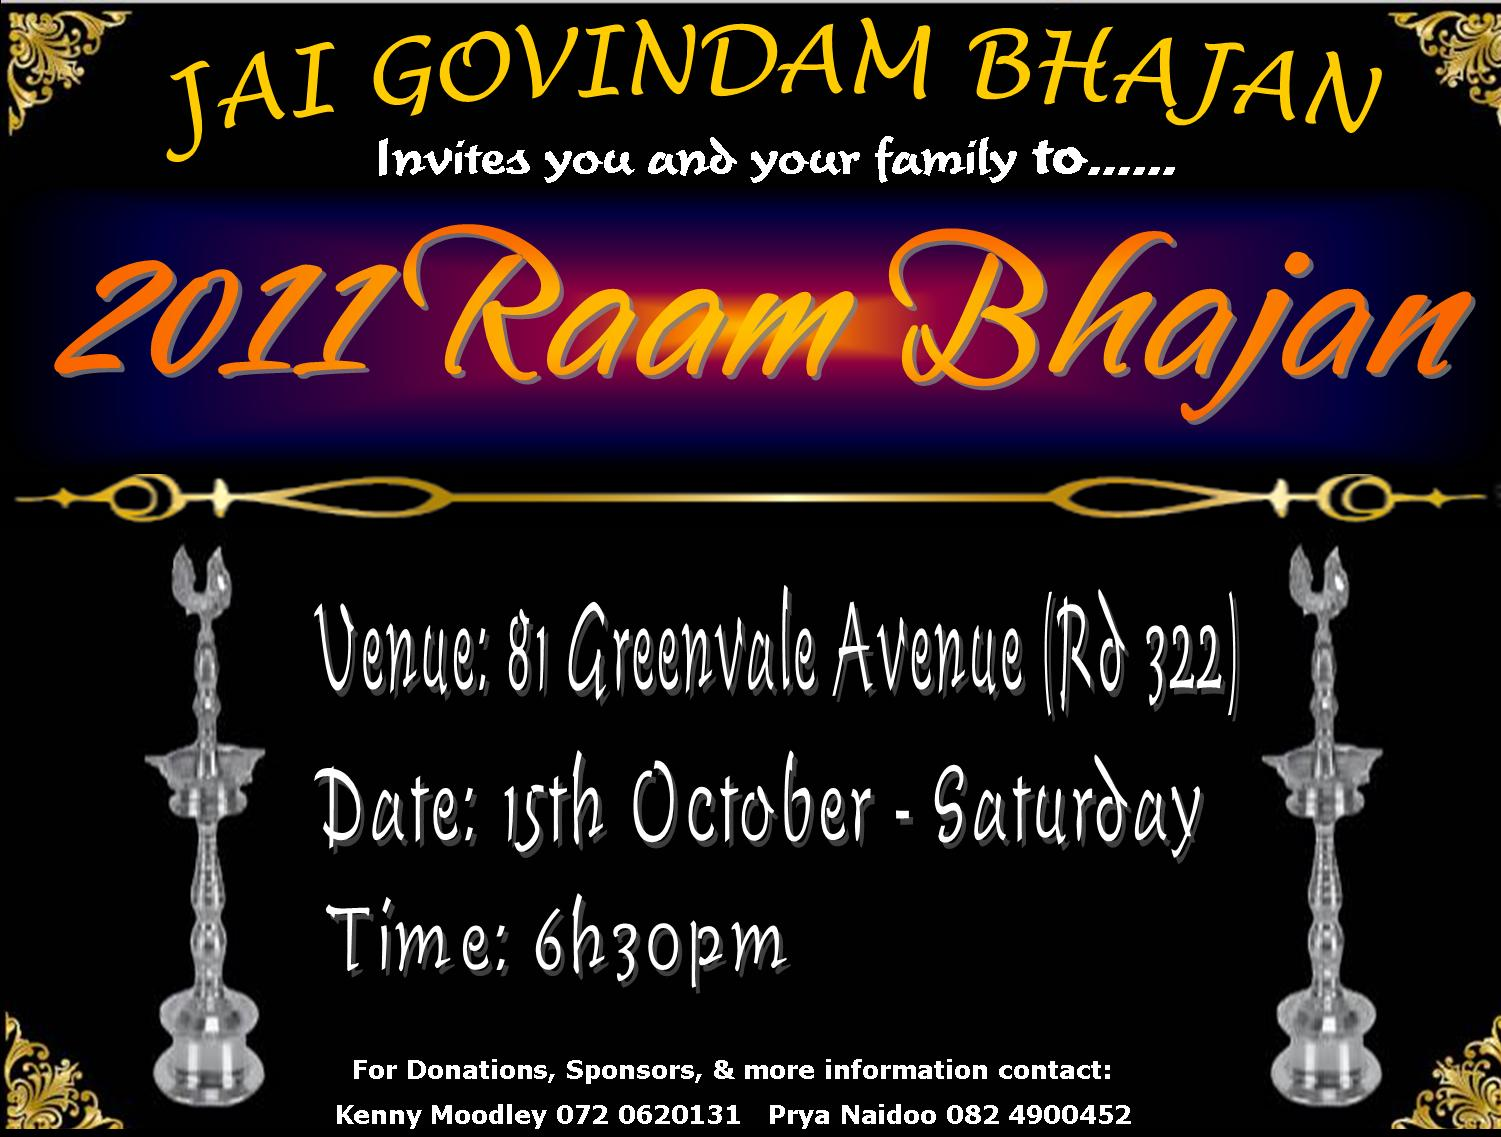 Durban Bhajan Group